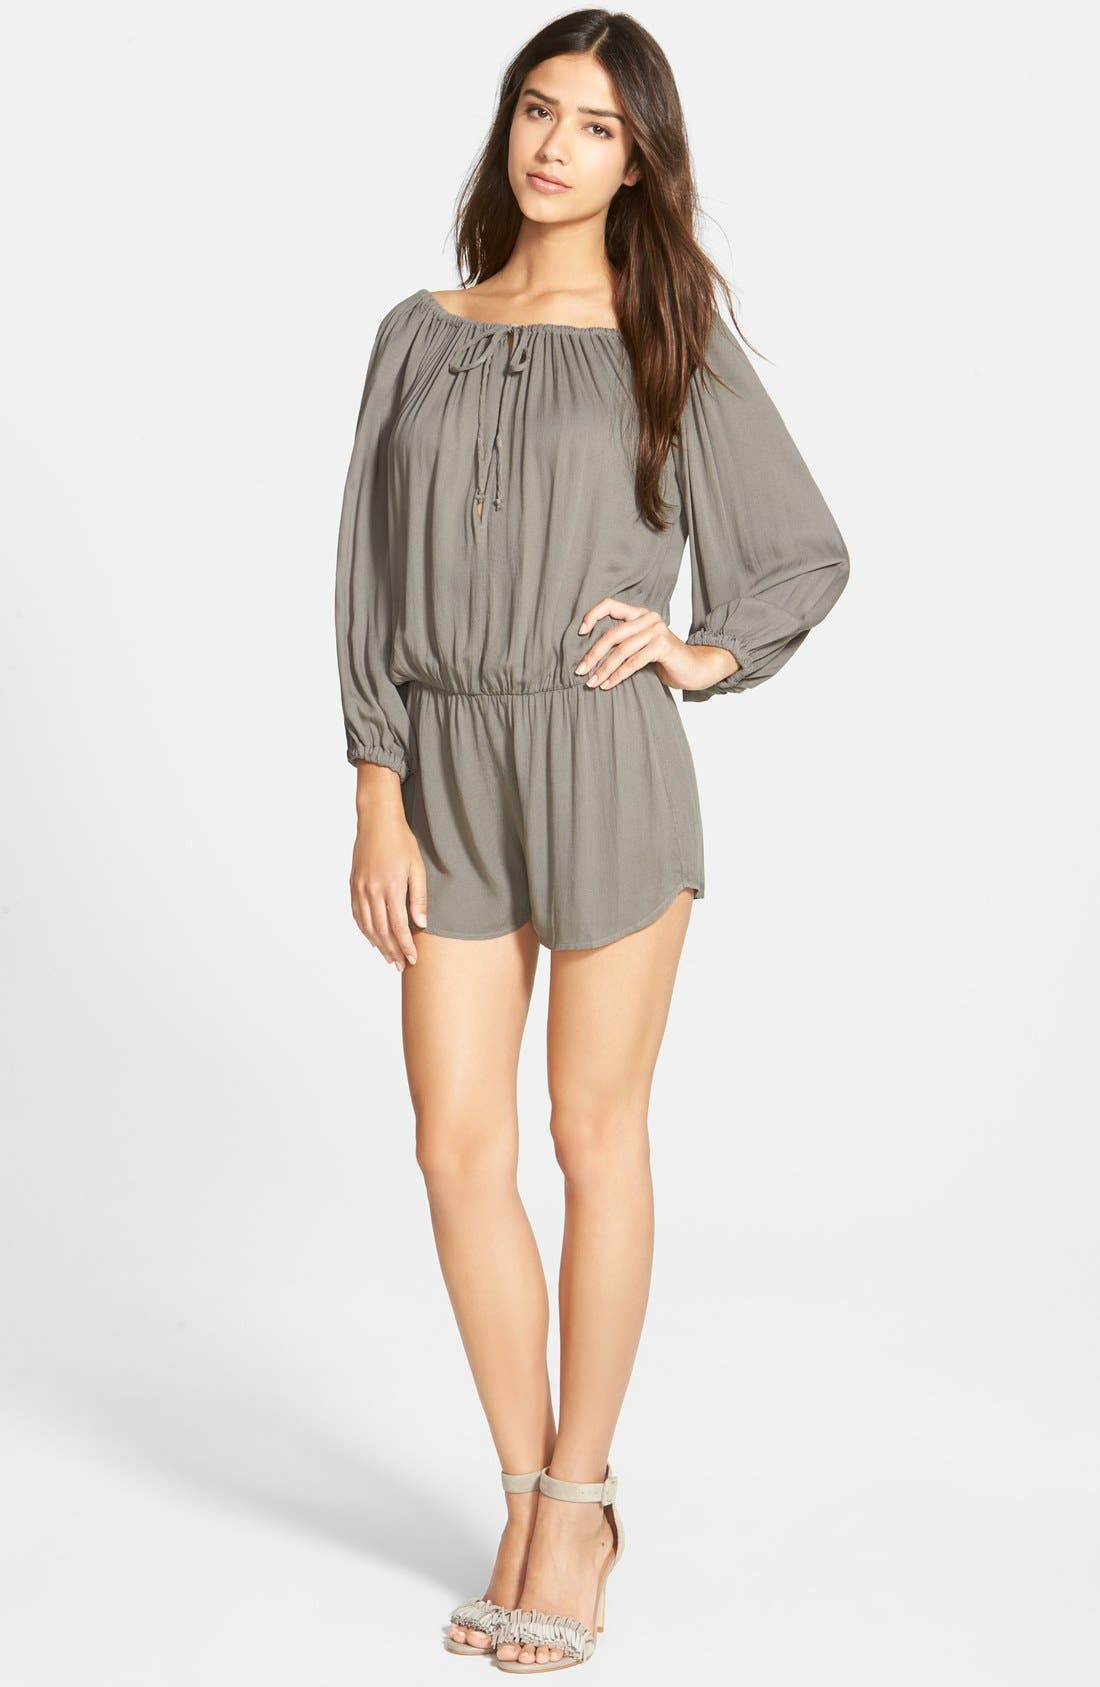 Alternate Image 1 Selected - Young, Fabulous & Broke 'Bess' Off the Shoulder Romper